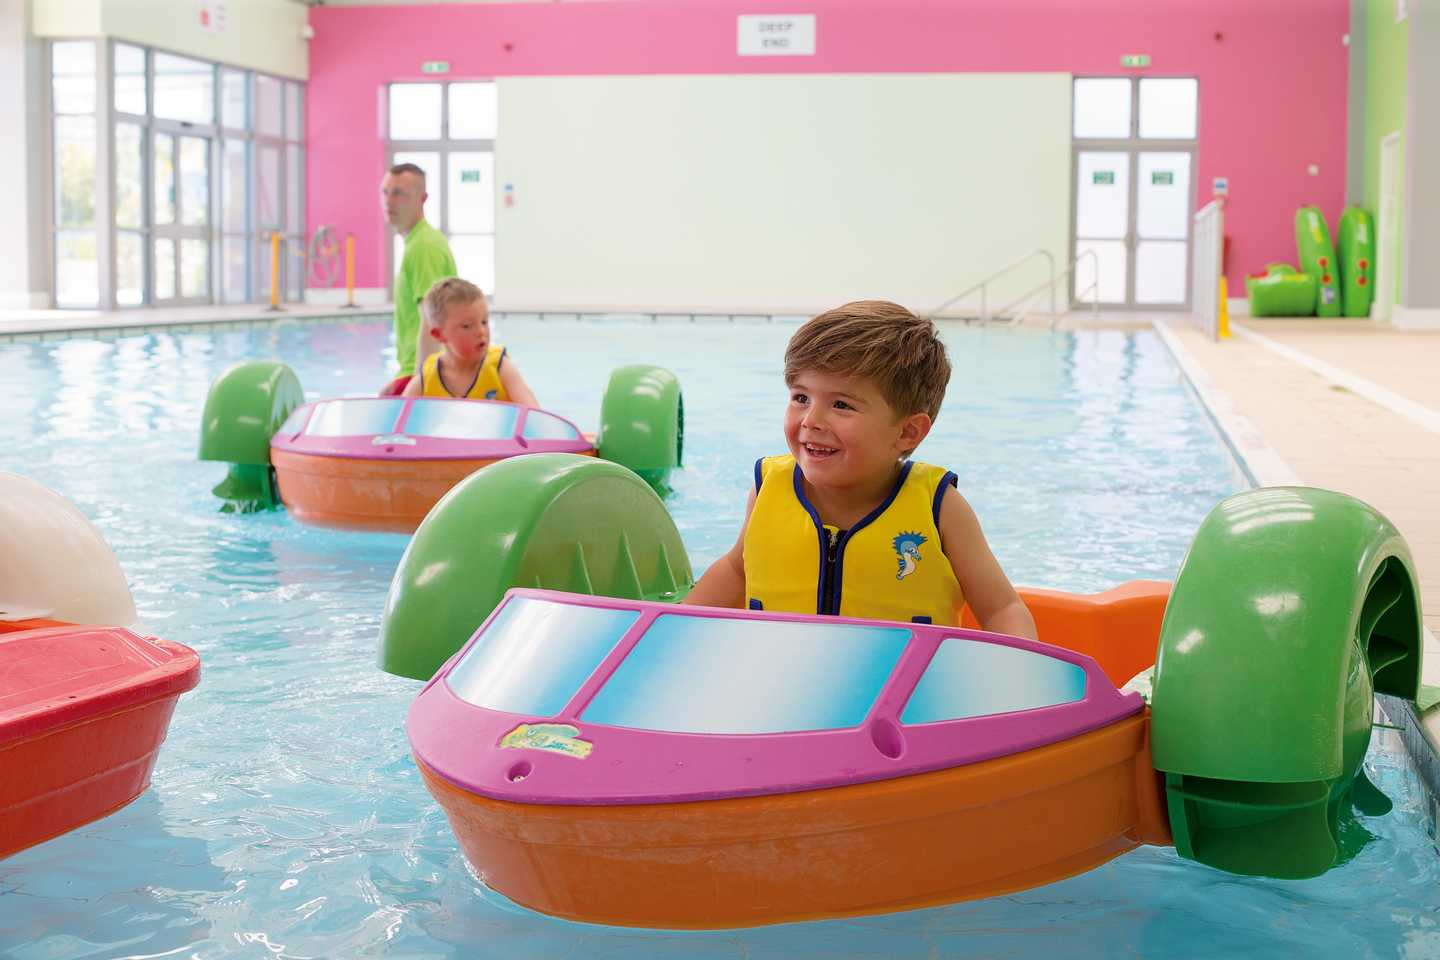 Child navigating the indoor pool in an Aqua Paddler